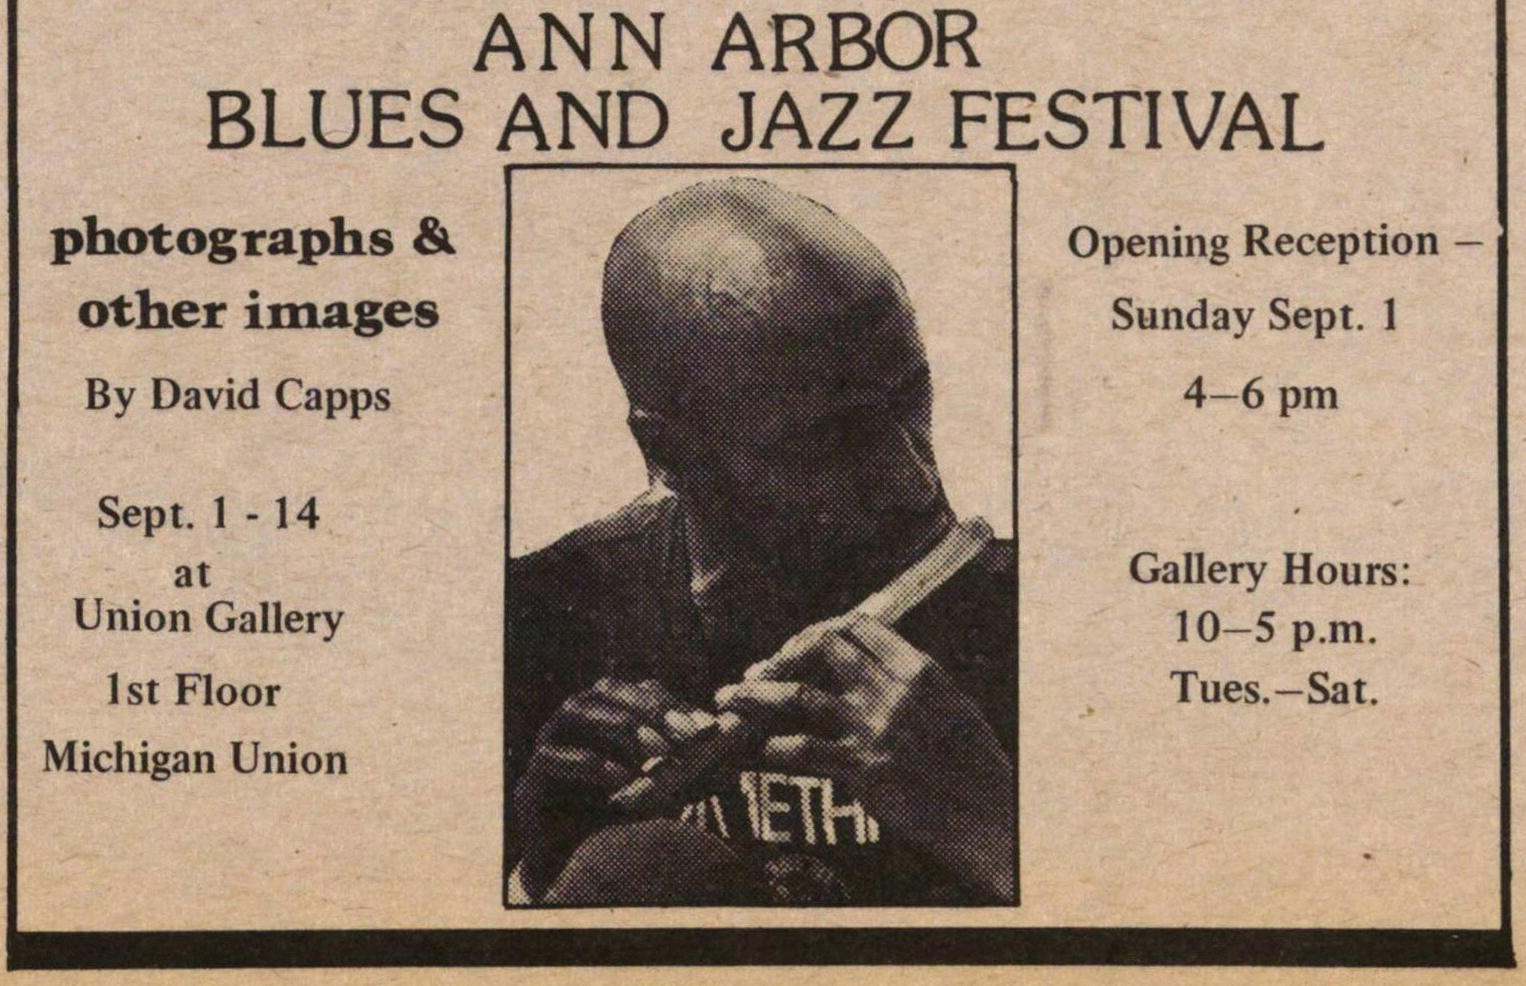 Ann Arbor Blues And Jazz Festival image